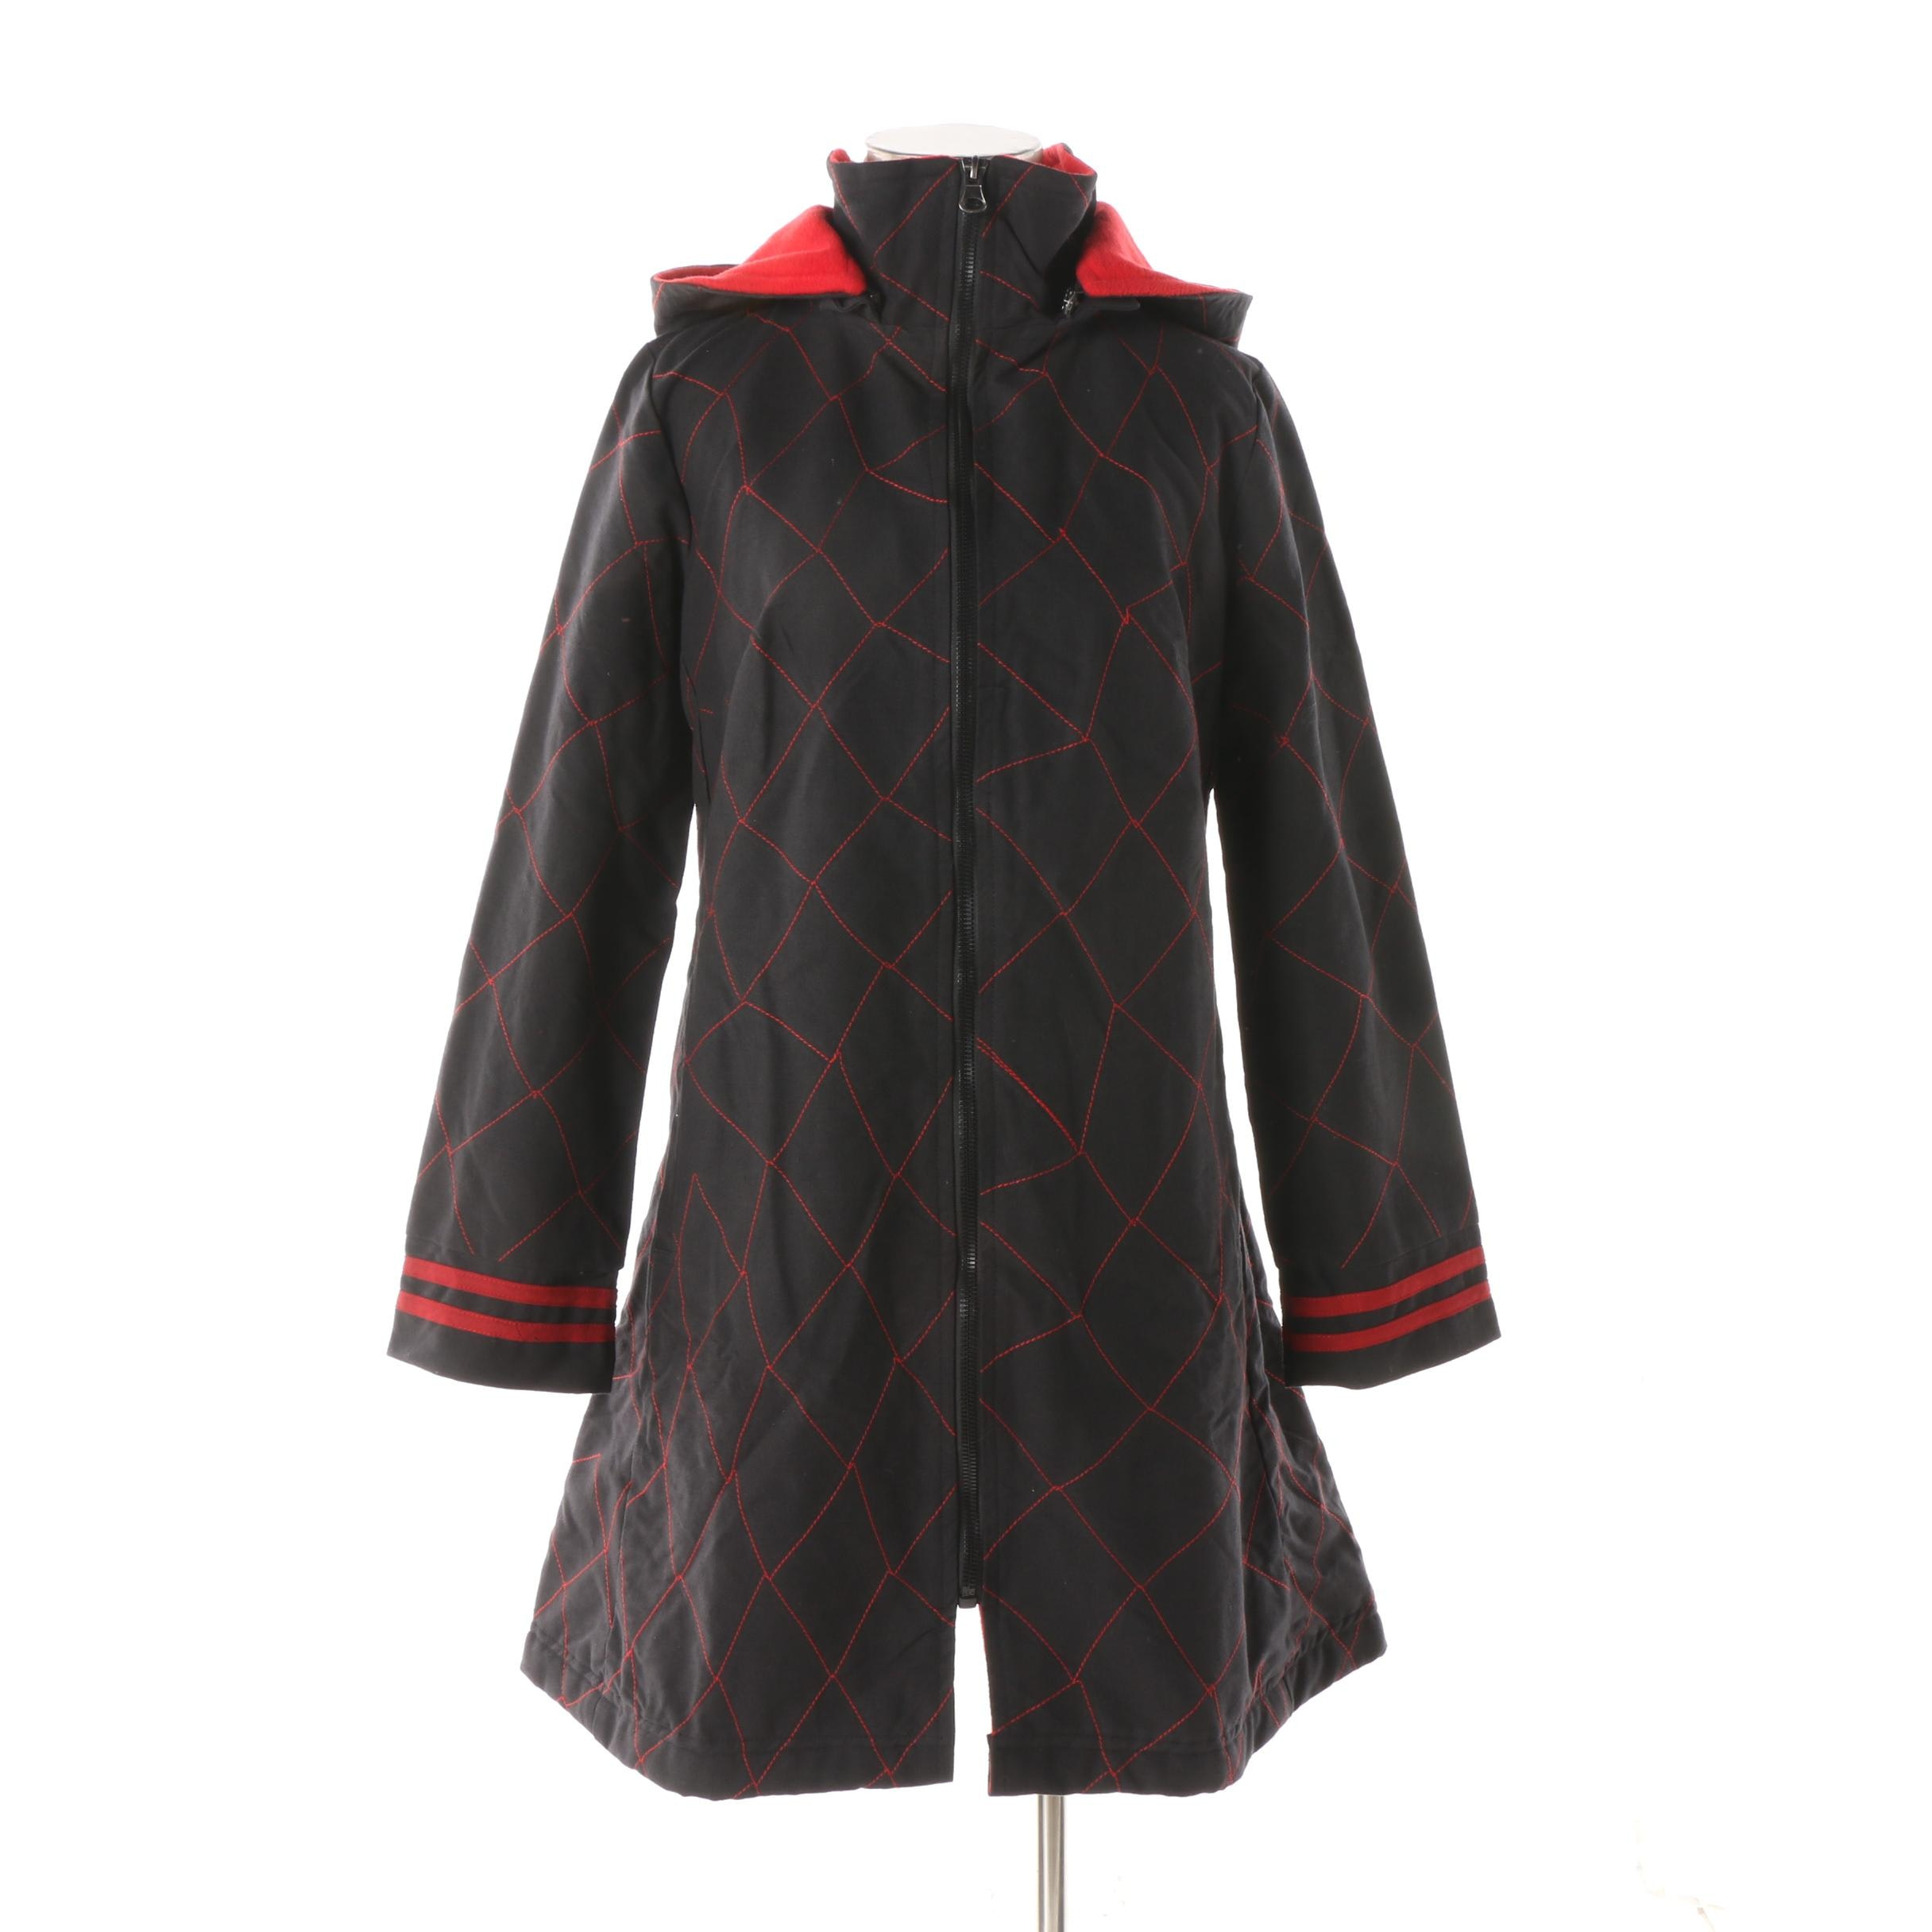 Women's Aller Simplement Black and Red Hooded Zipper-Front Jacket